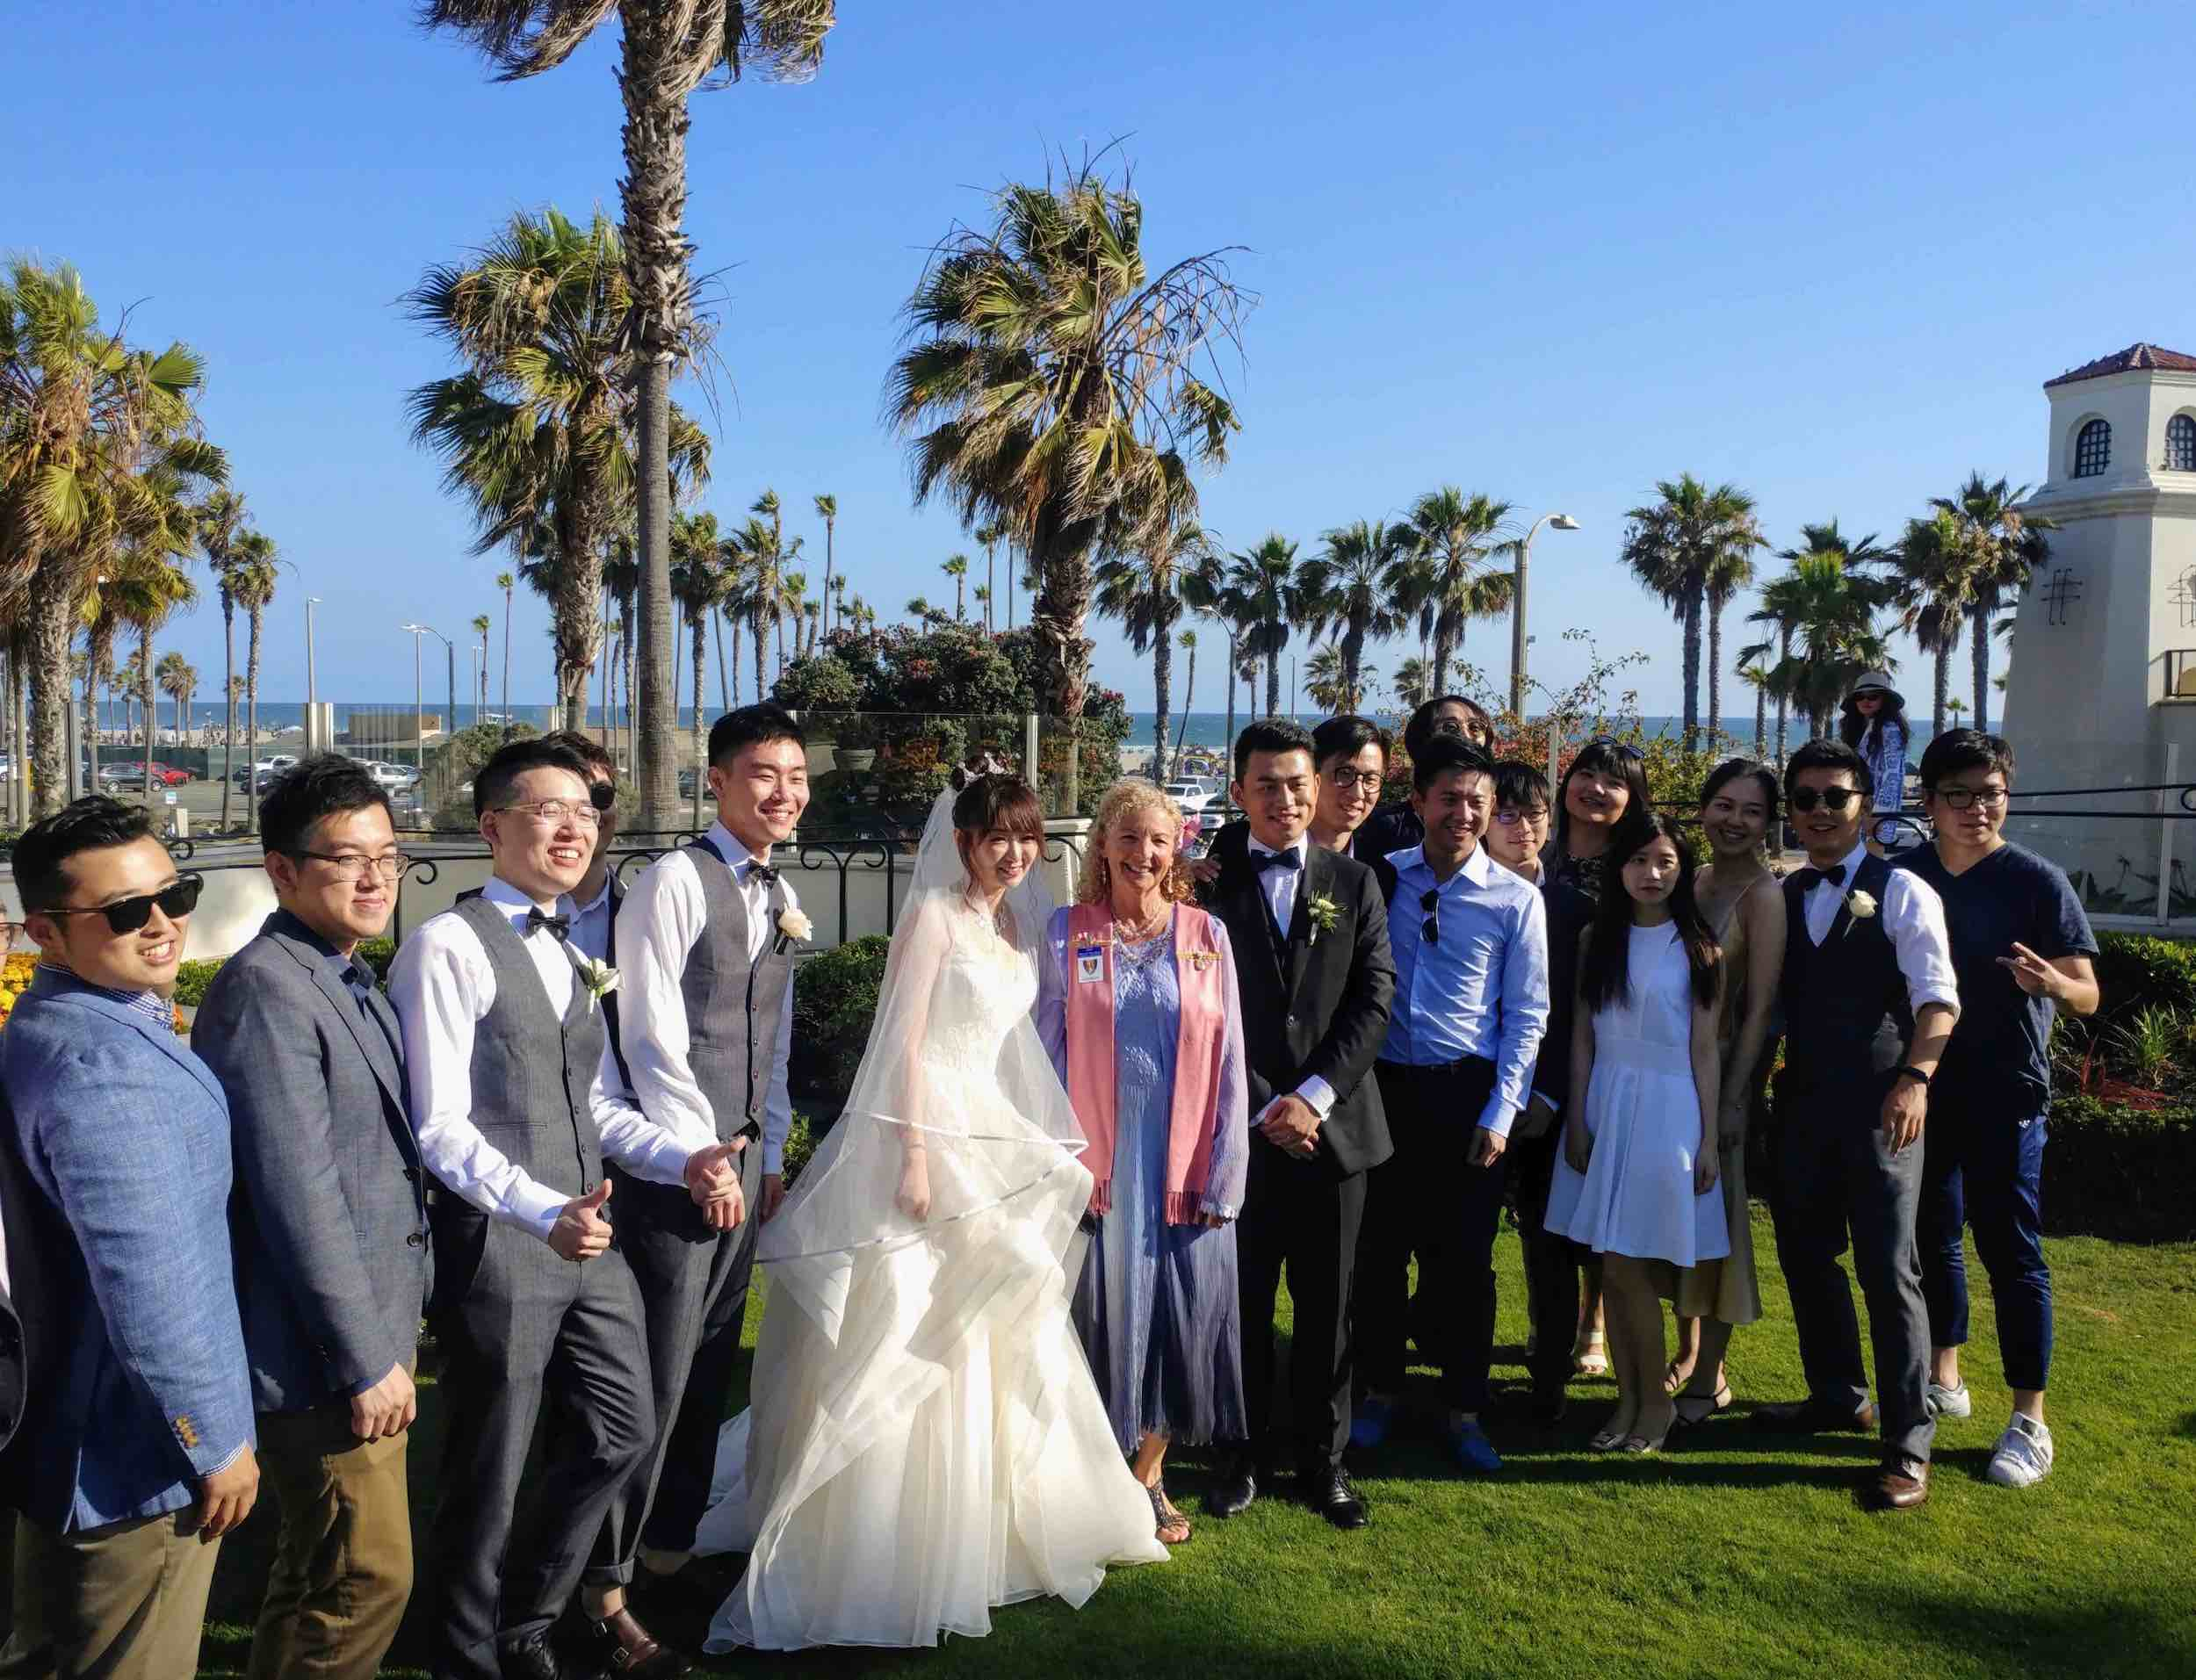 Hyatt HB wedding group